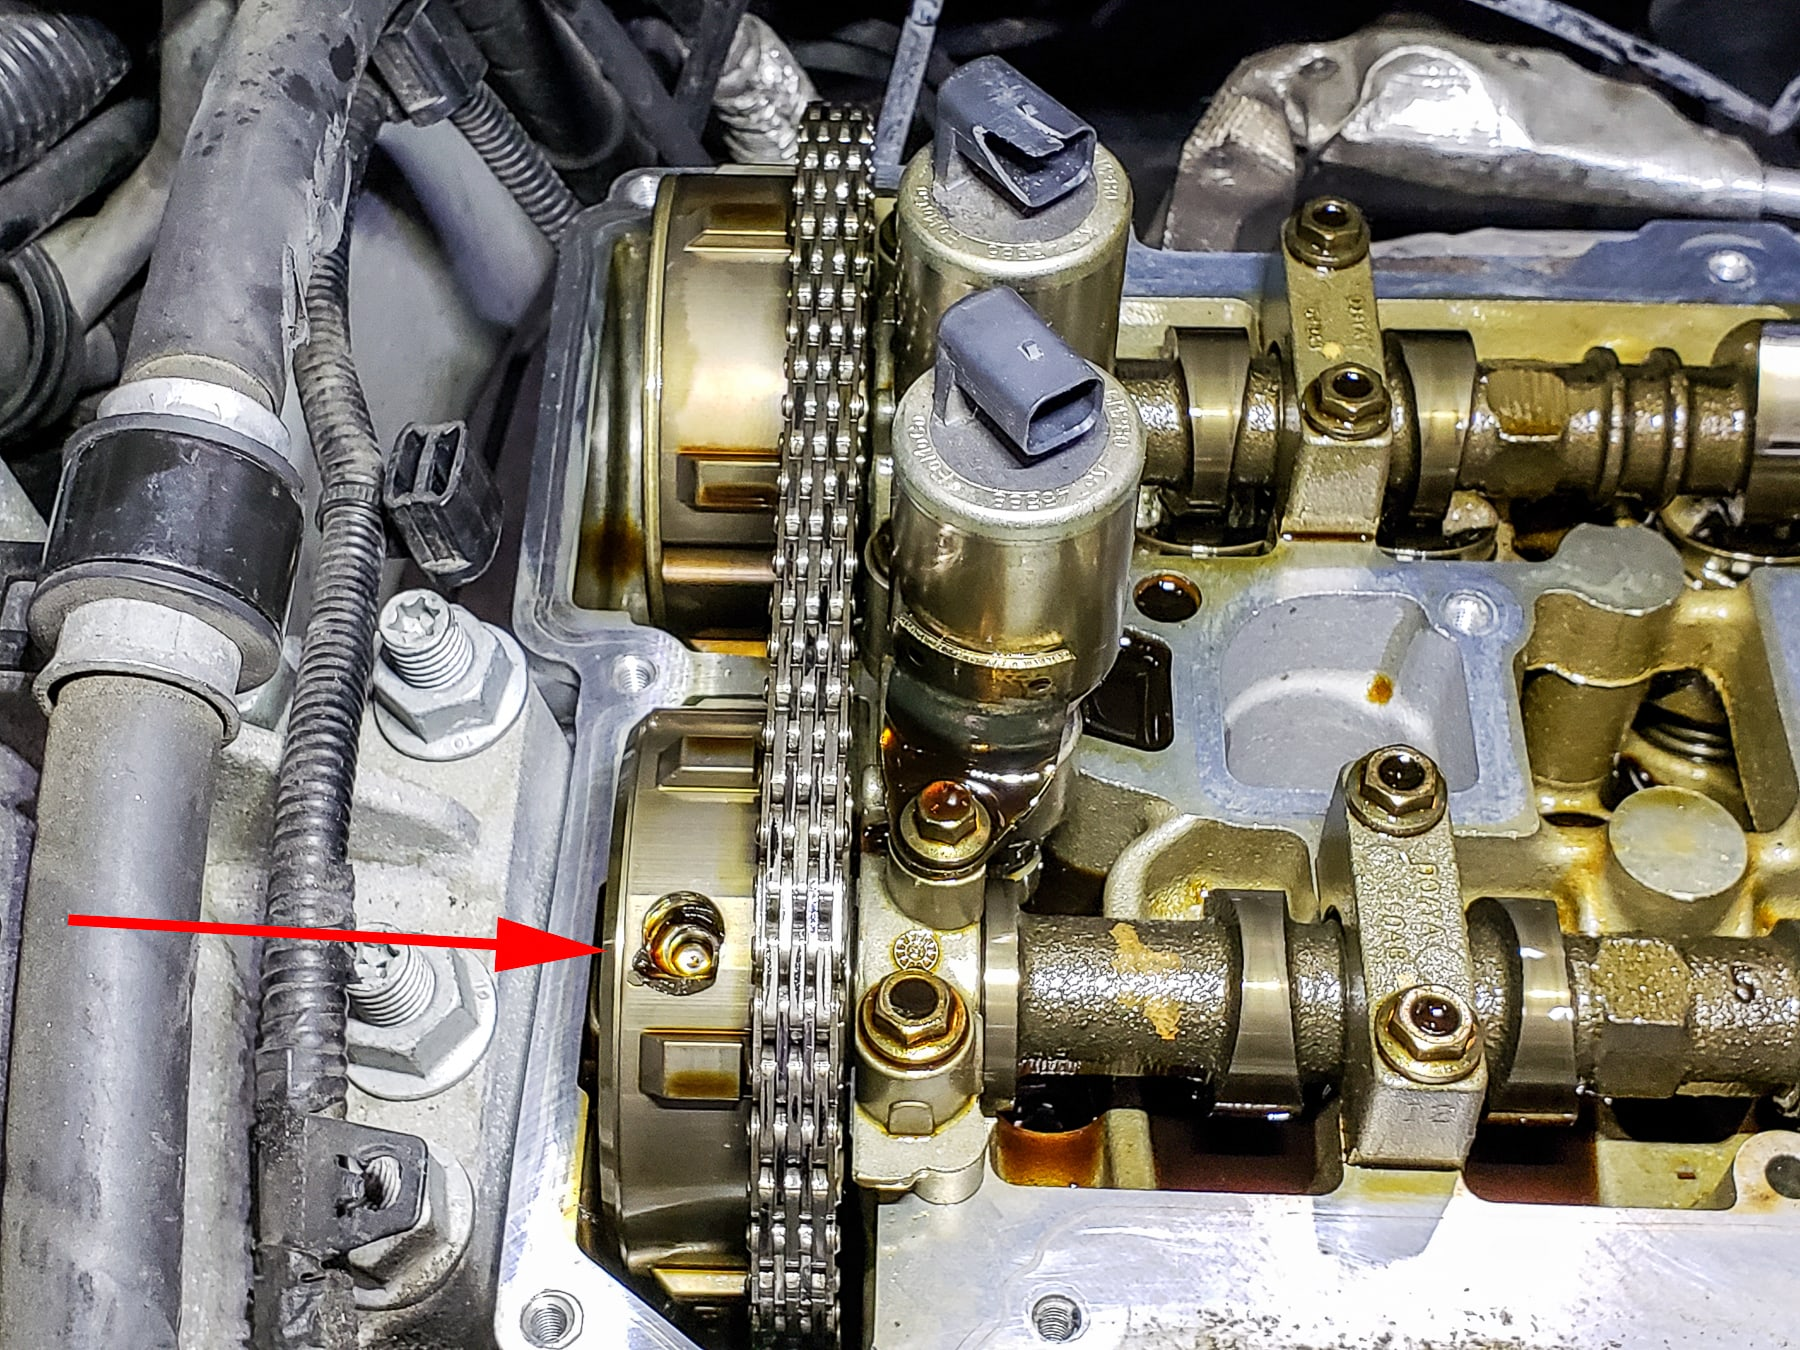 2013 Land Rover LR2 - Intake Camshaft Gear Replacement